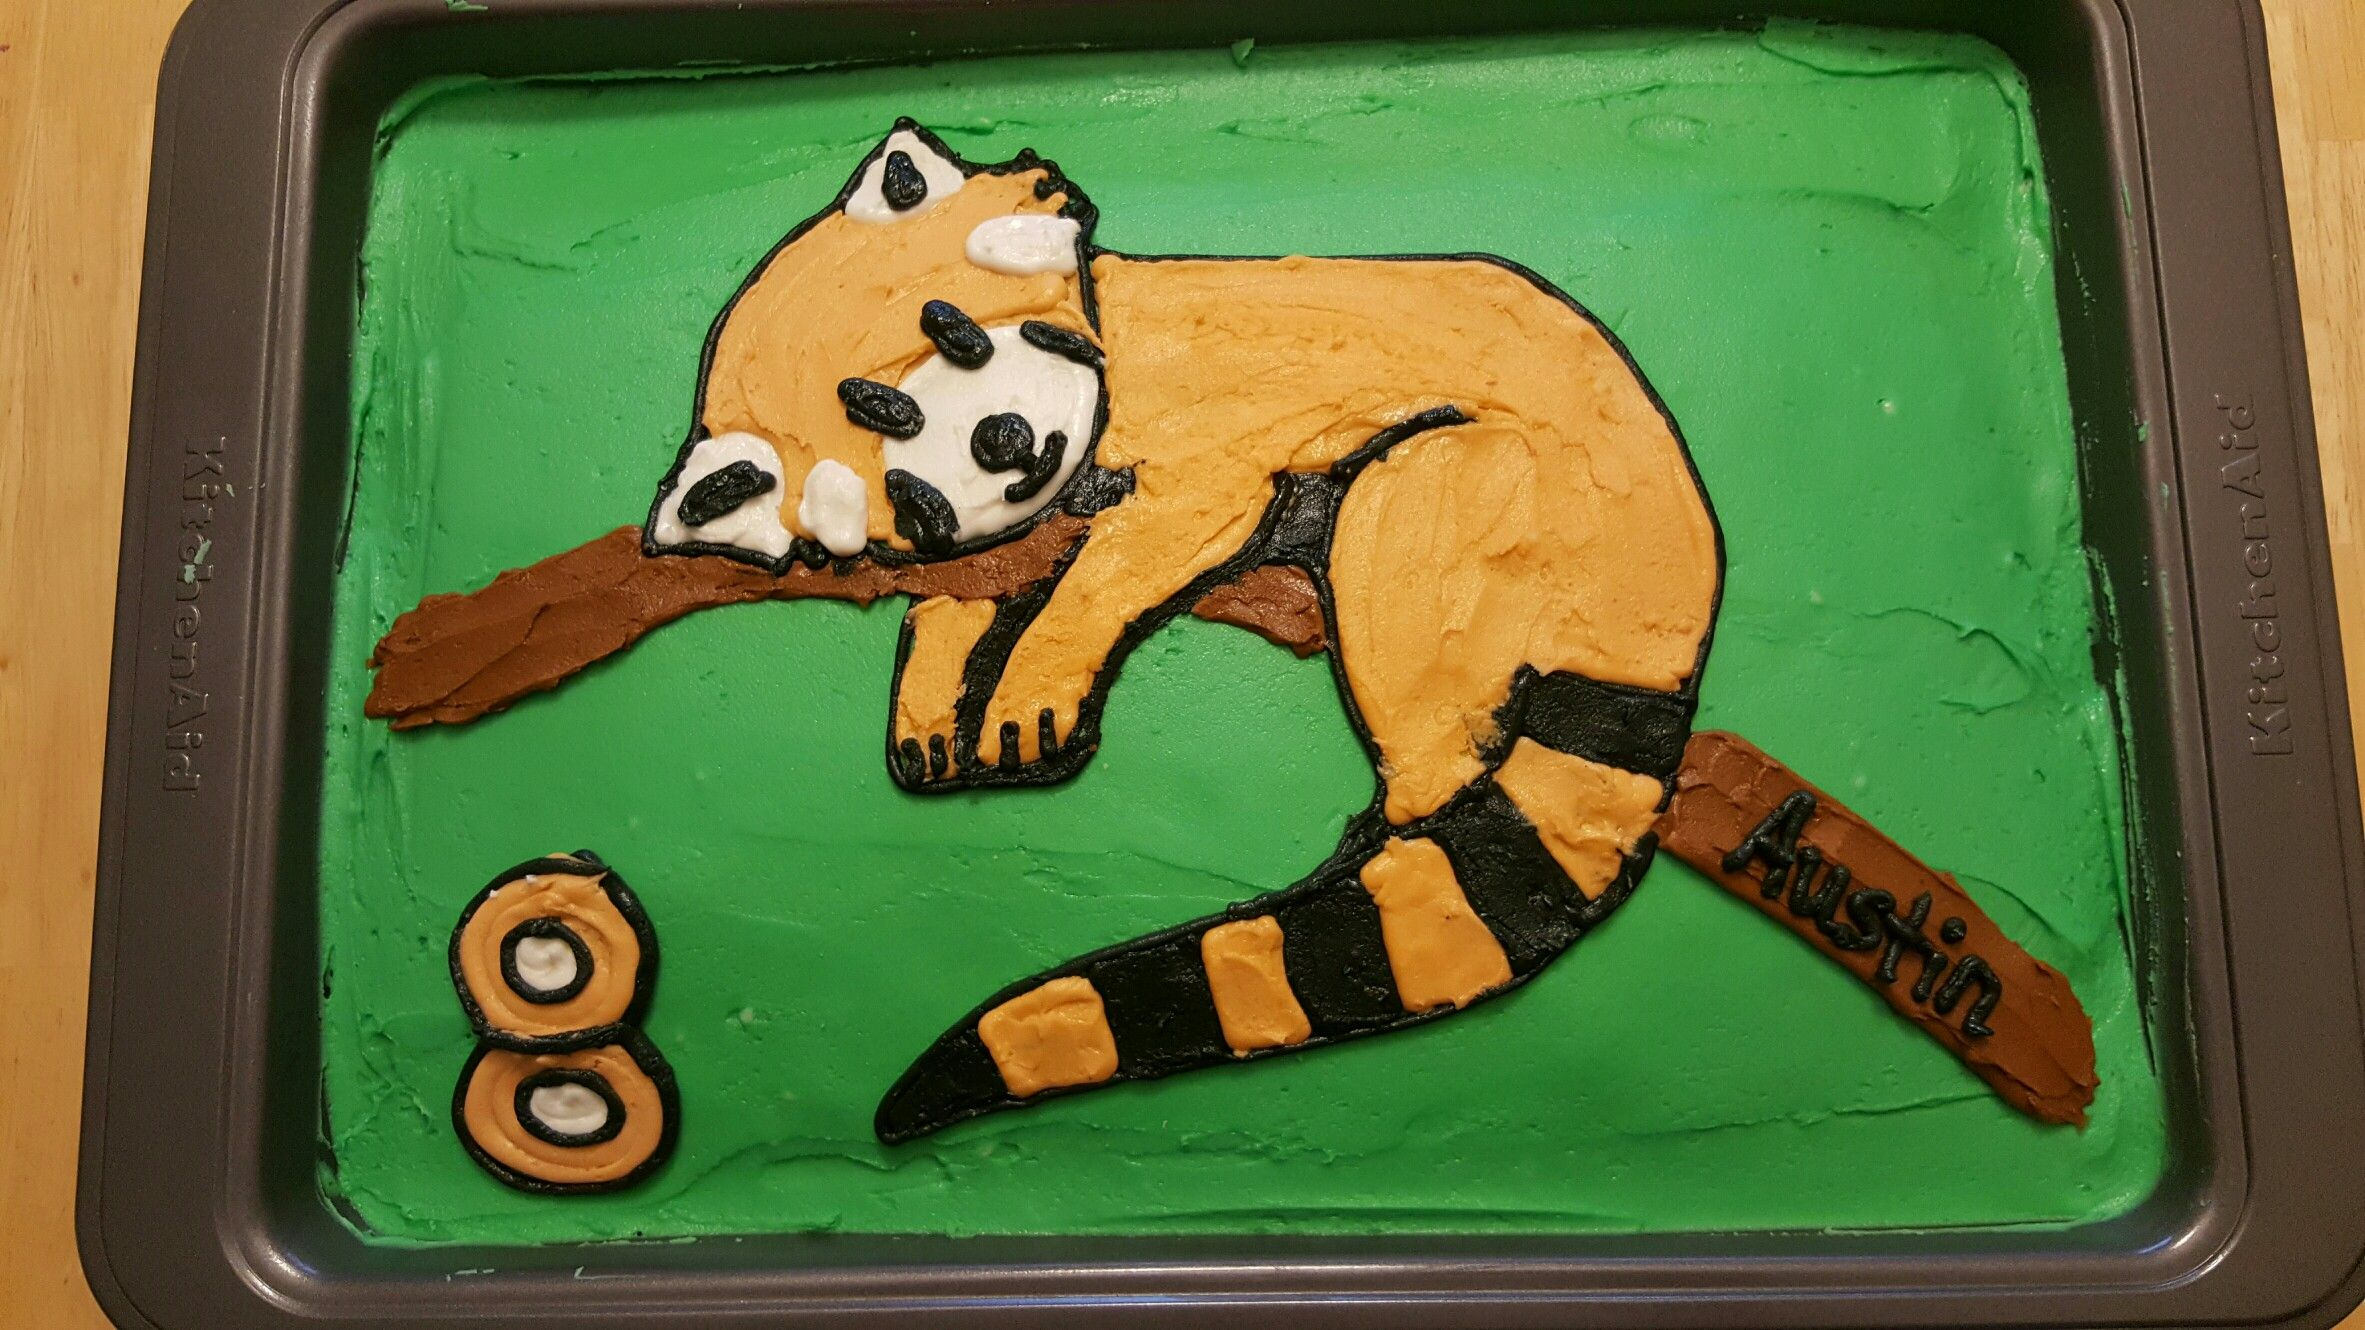 Red Panda Cake Cakes Pinterest Panda Cakes Cake And Recipes